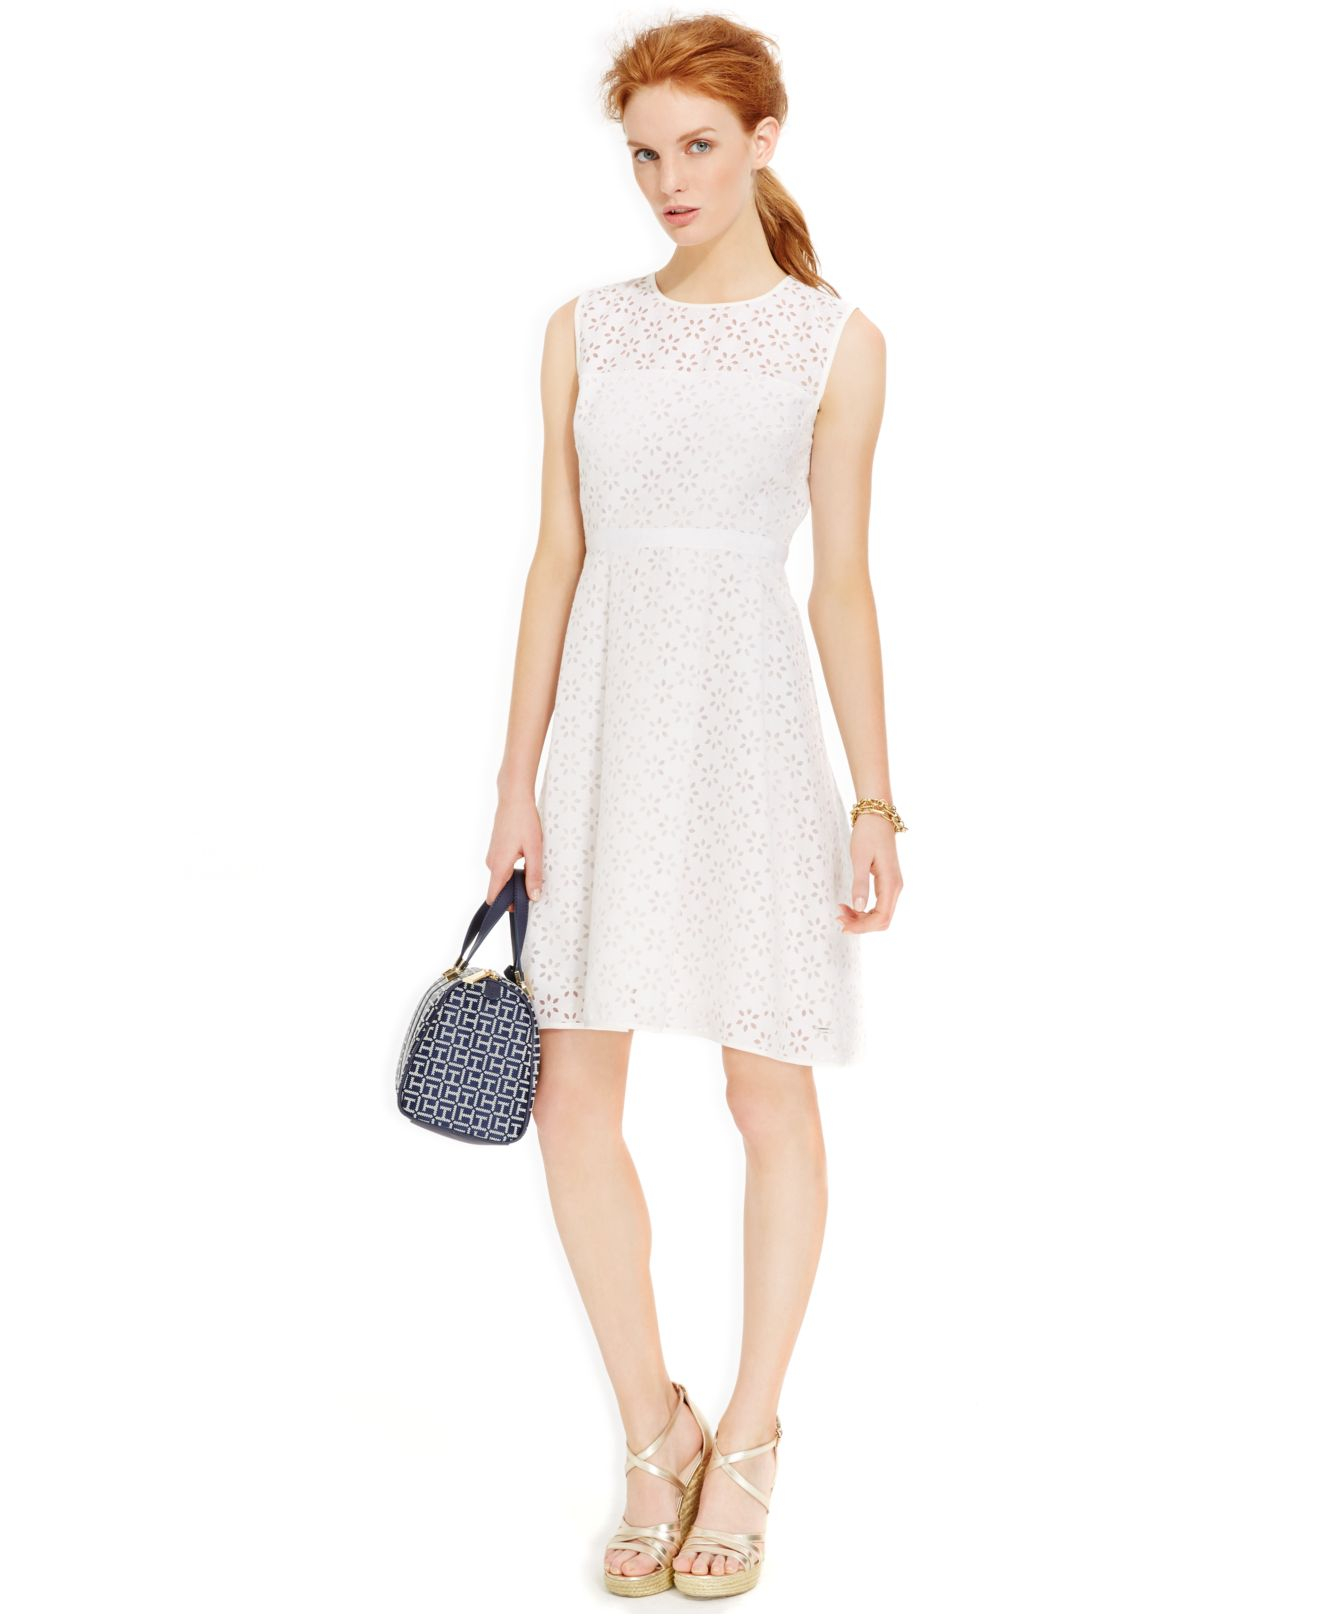 878b6d44 Tommy Hilfiger A-Line Eyelet Dress in White - Lyst